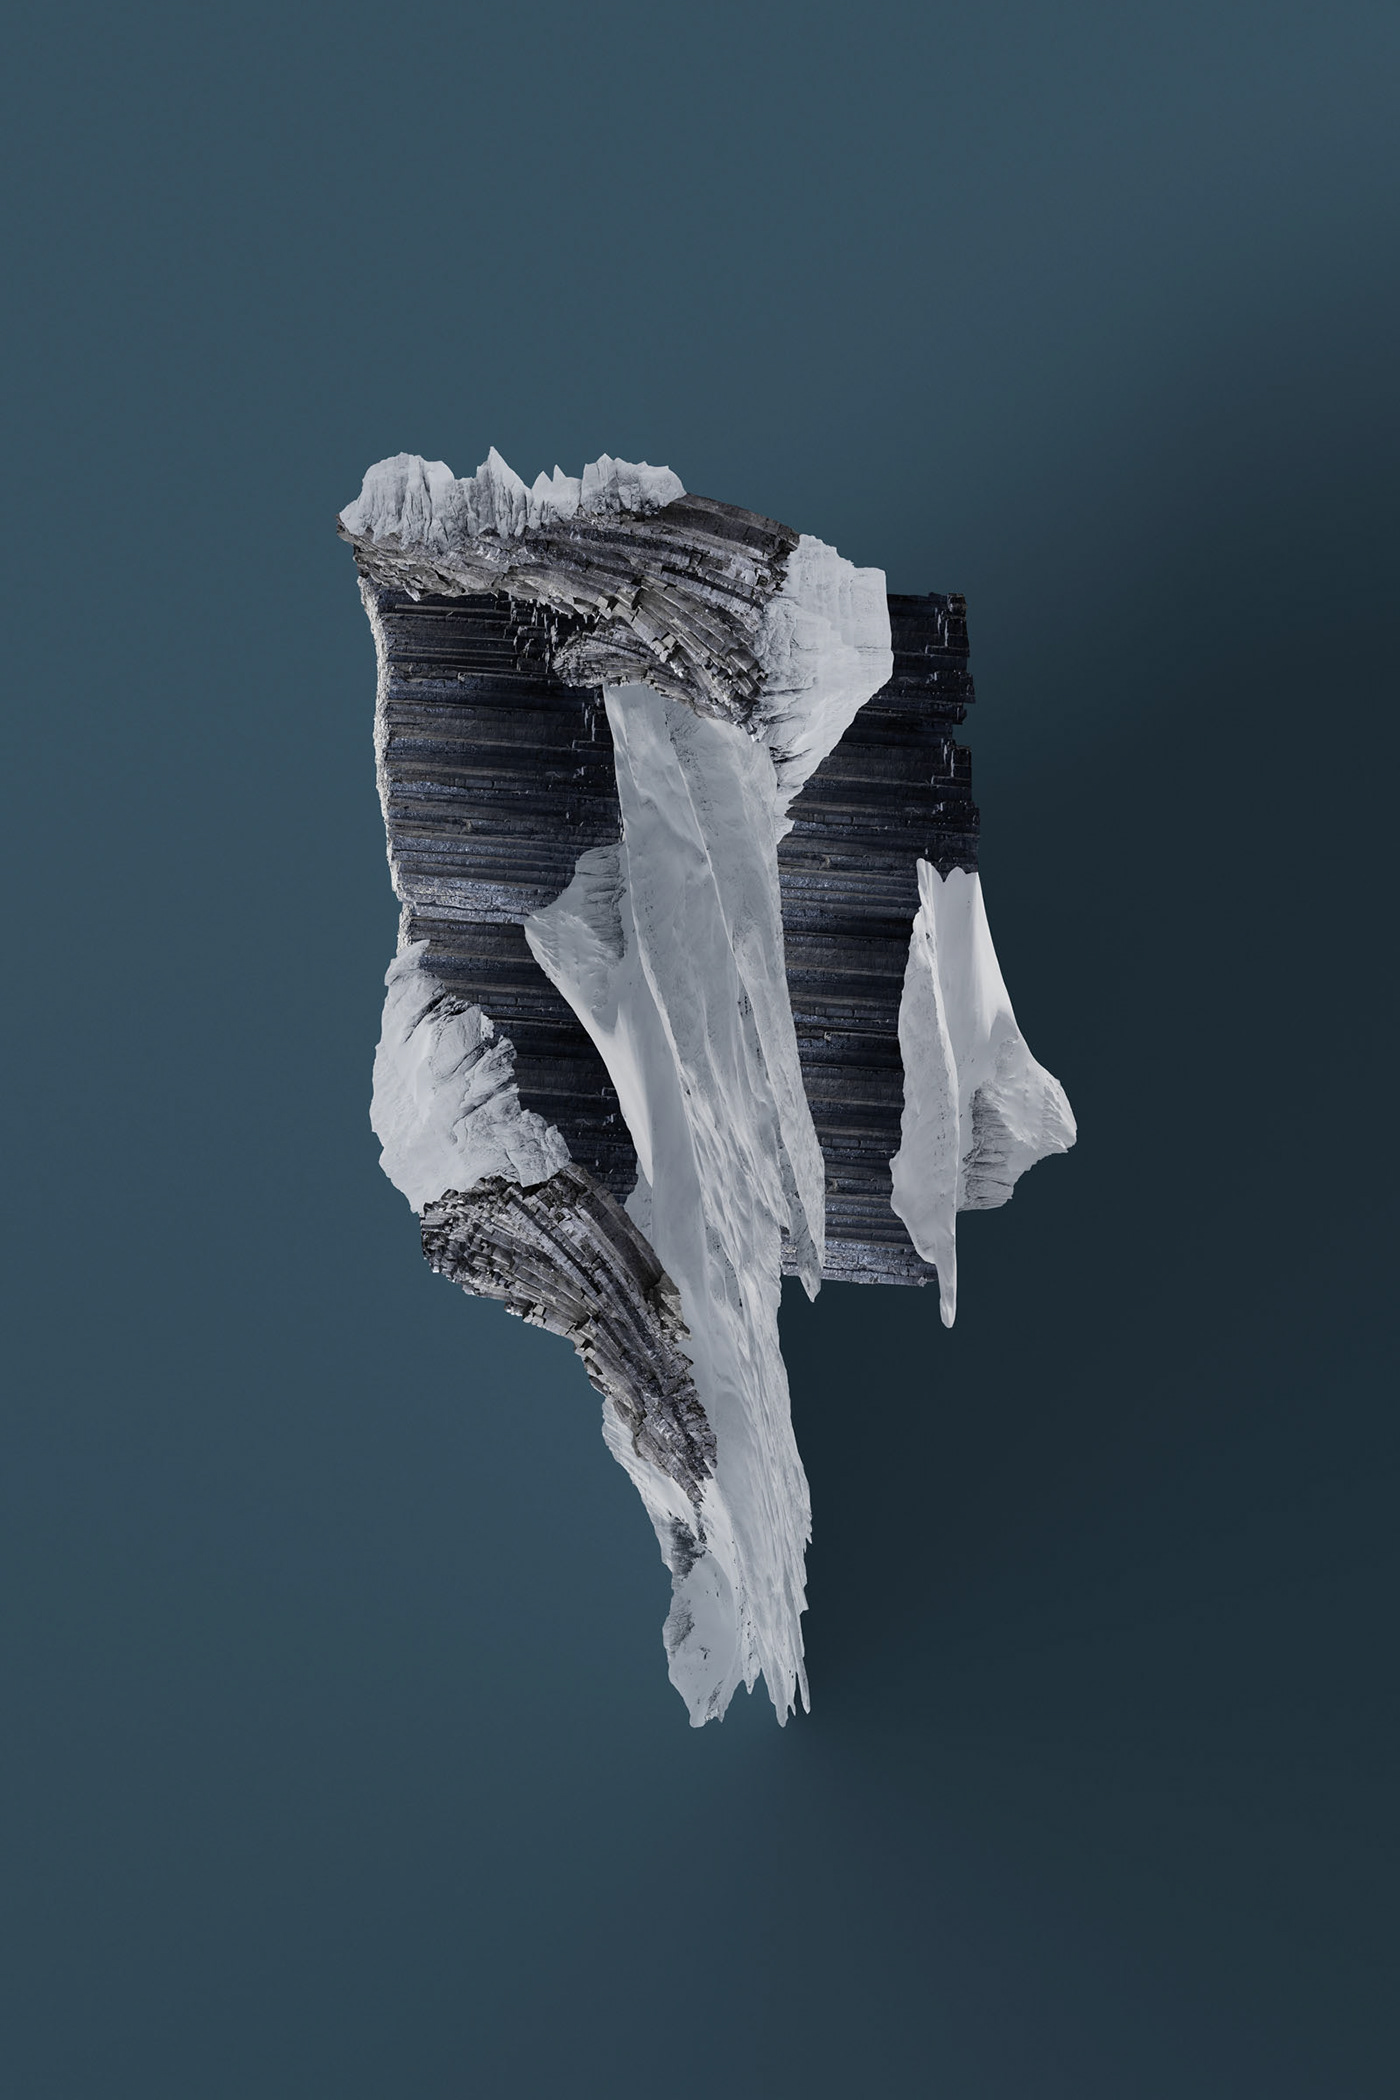 abstract iceland lava lavastract Sig Vicious Siggeir volcano